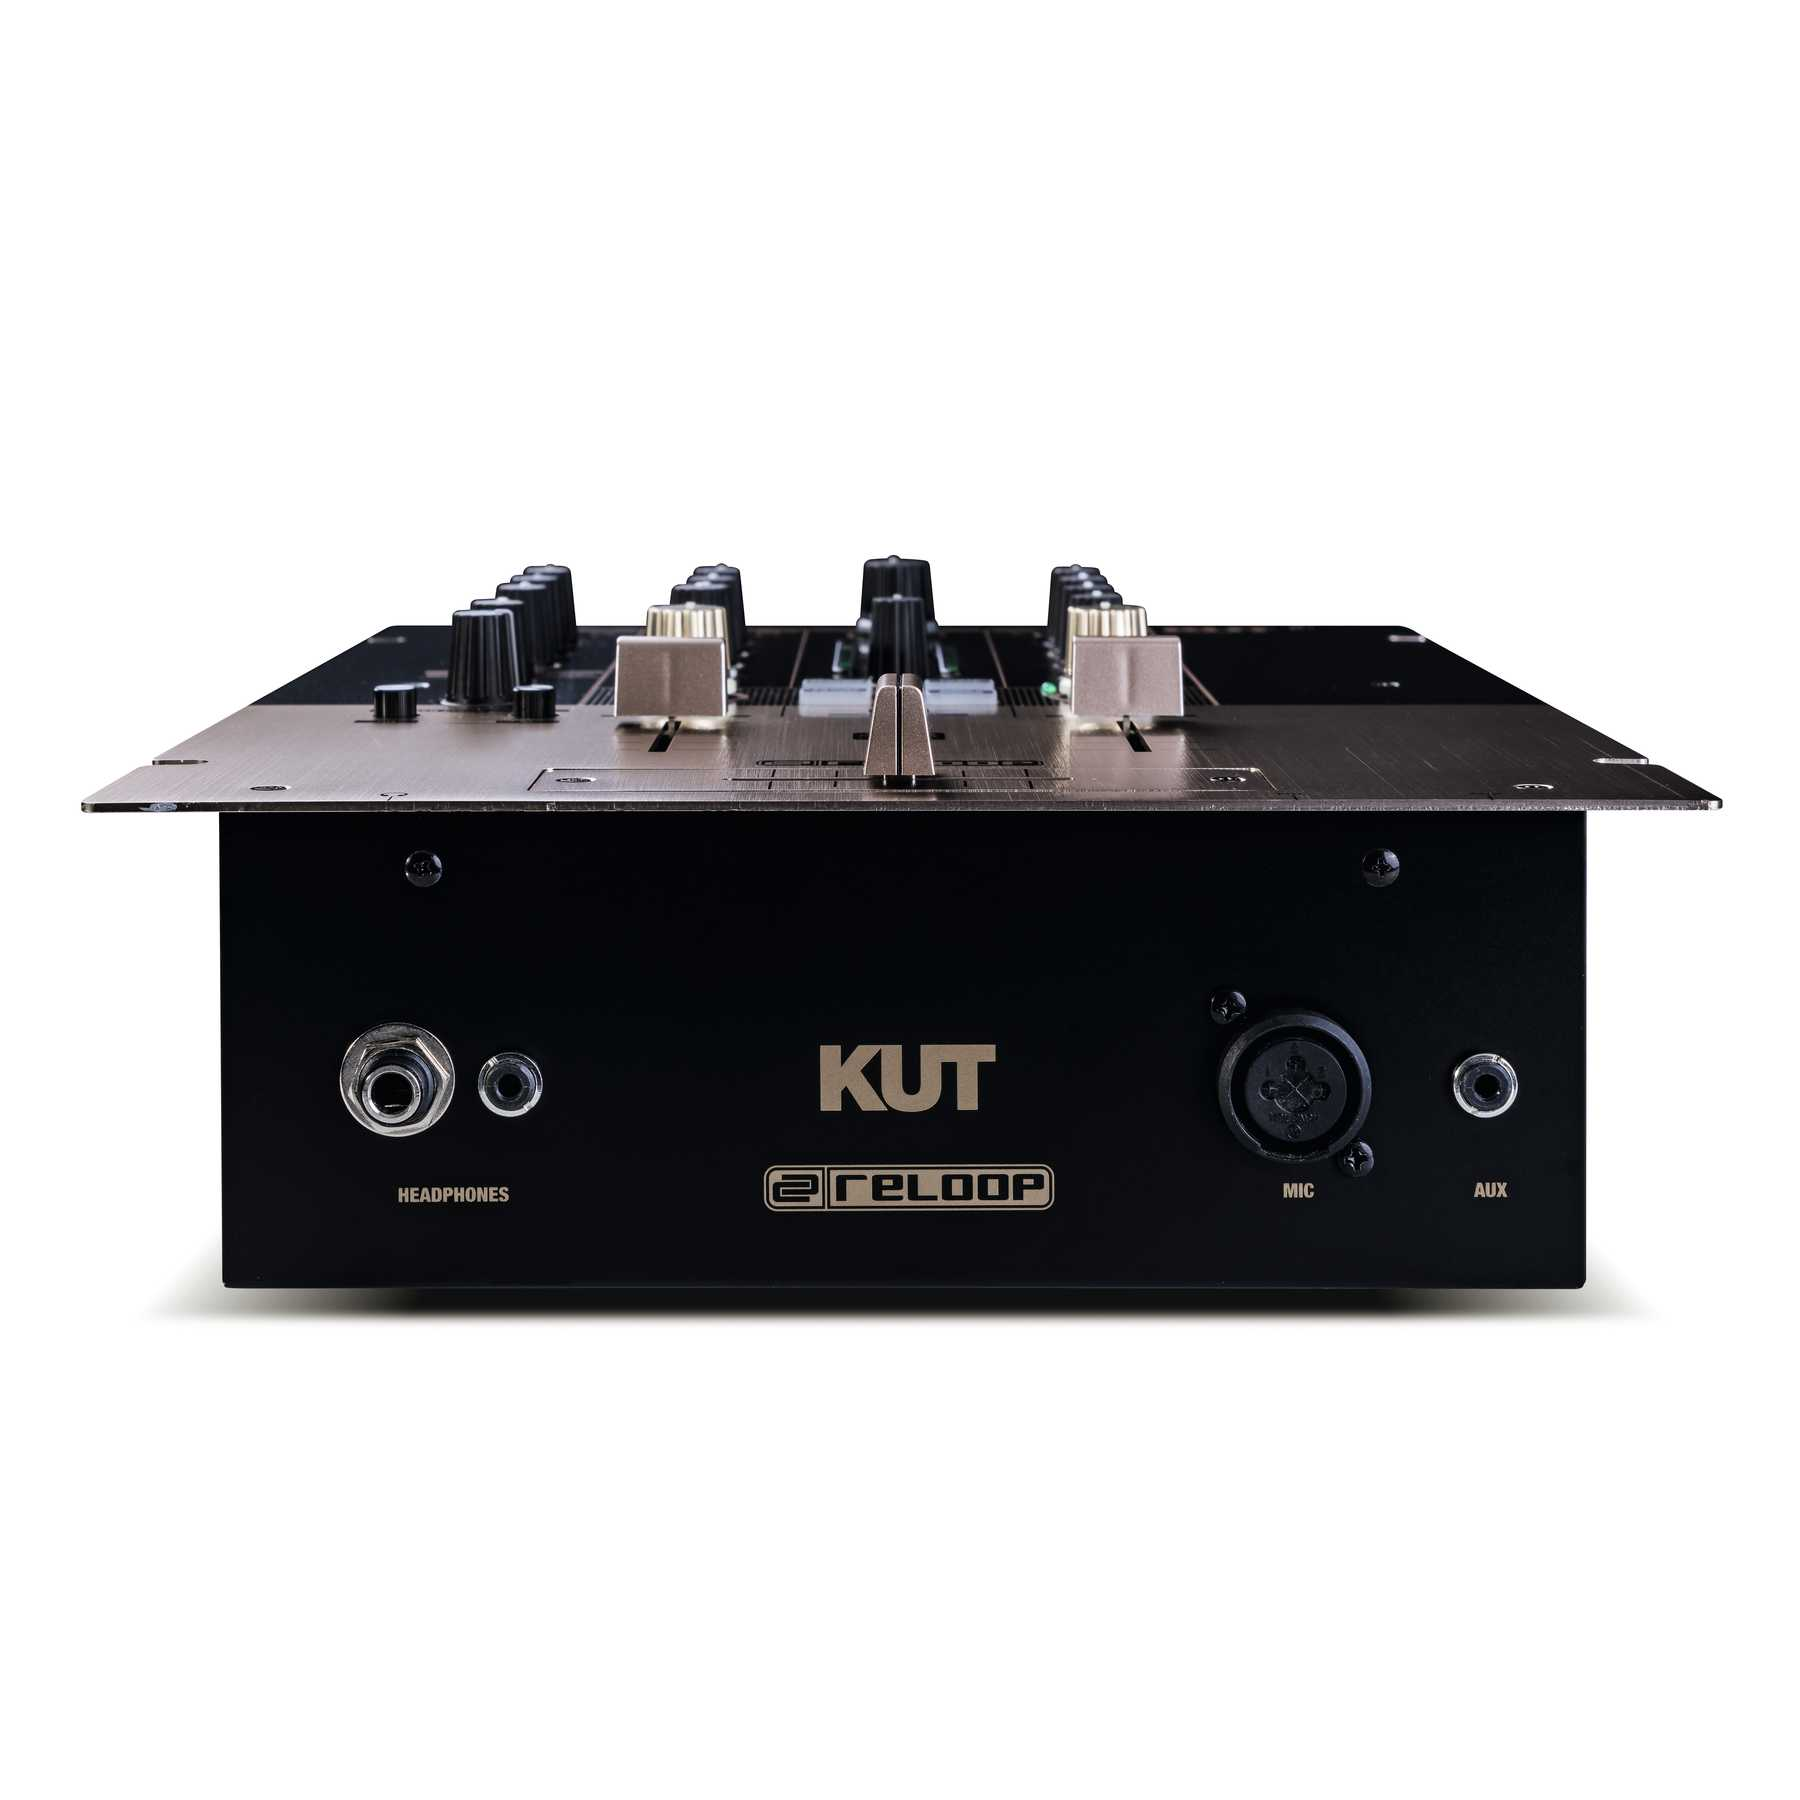 KUT Digital Battle FX Mixer